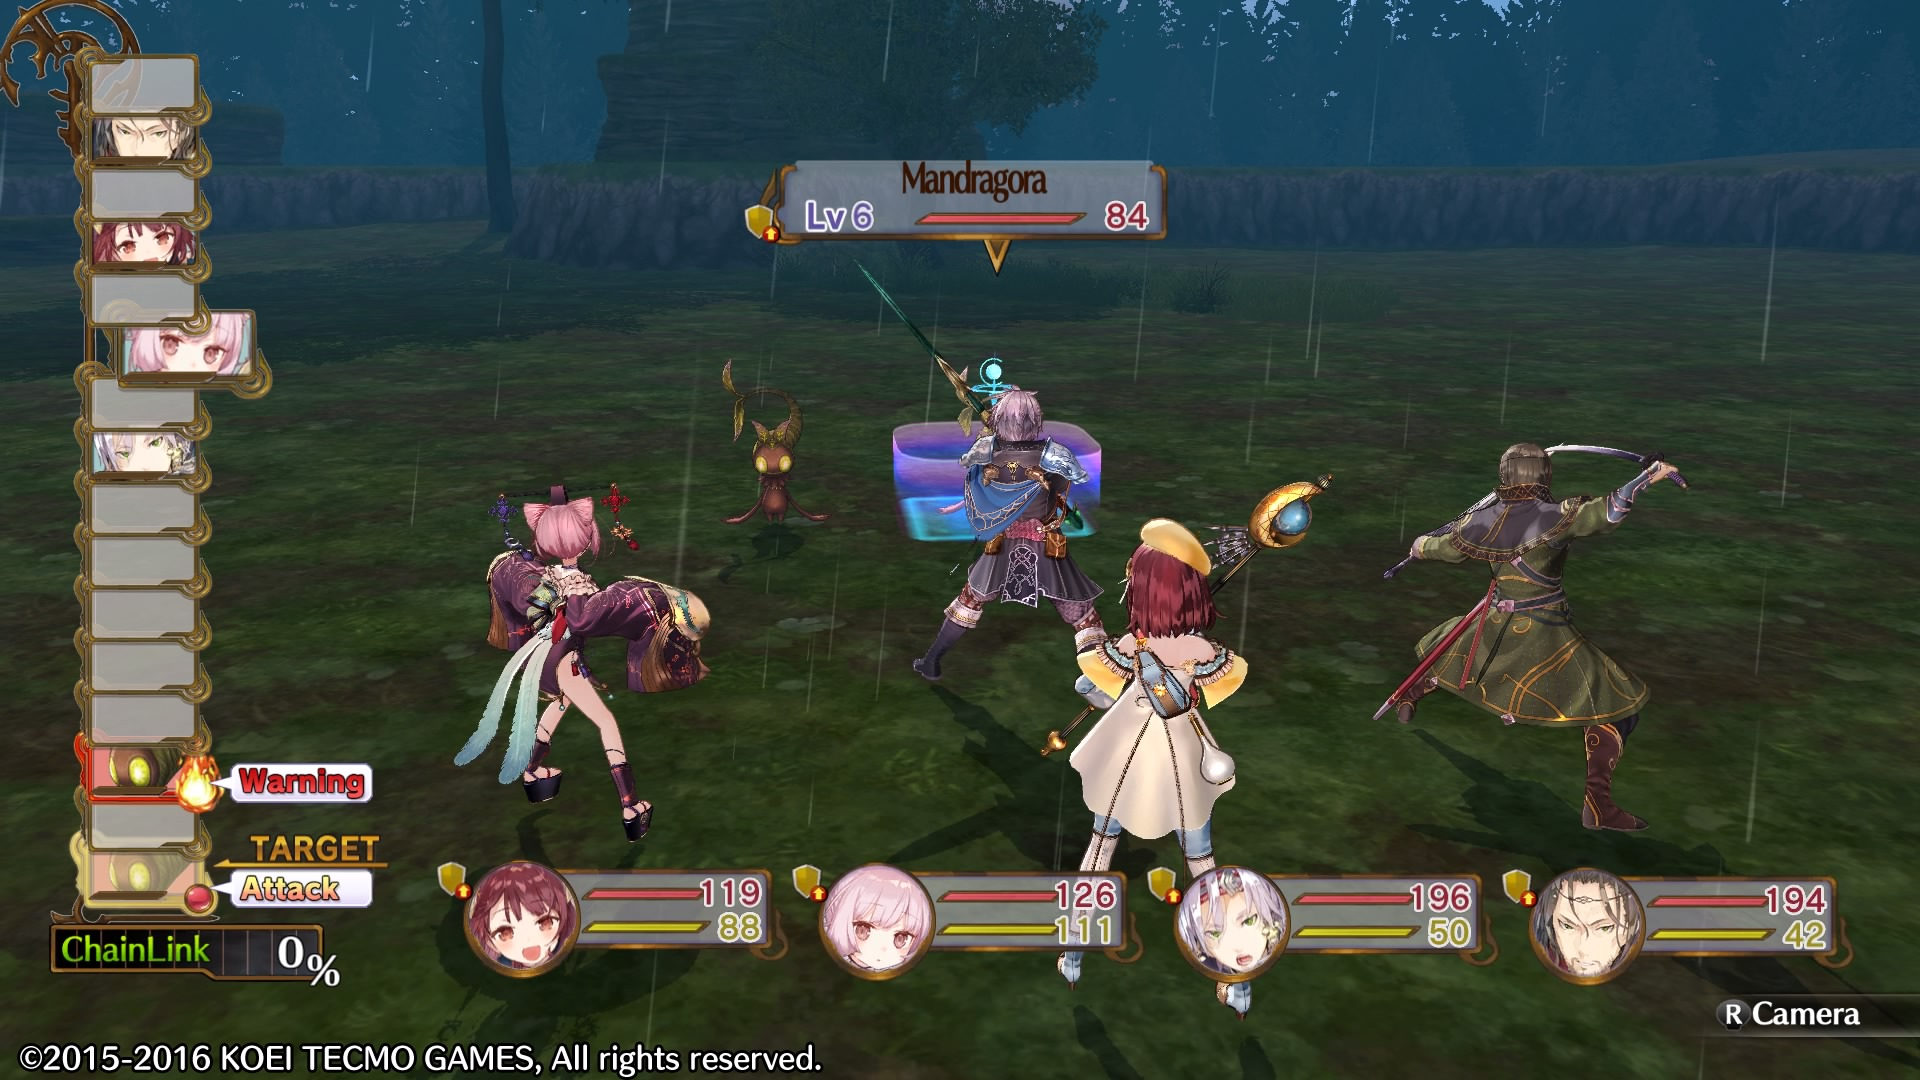 Atelier Mysterious Trilogy Deluxe Pack - recenzja i opinia o grze. Walka